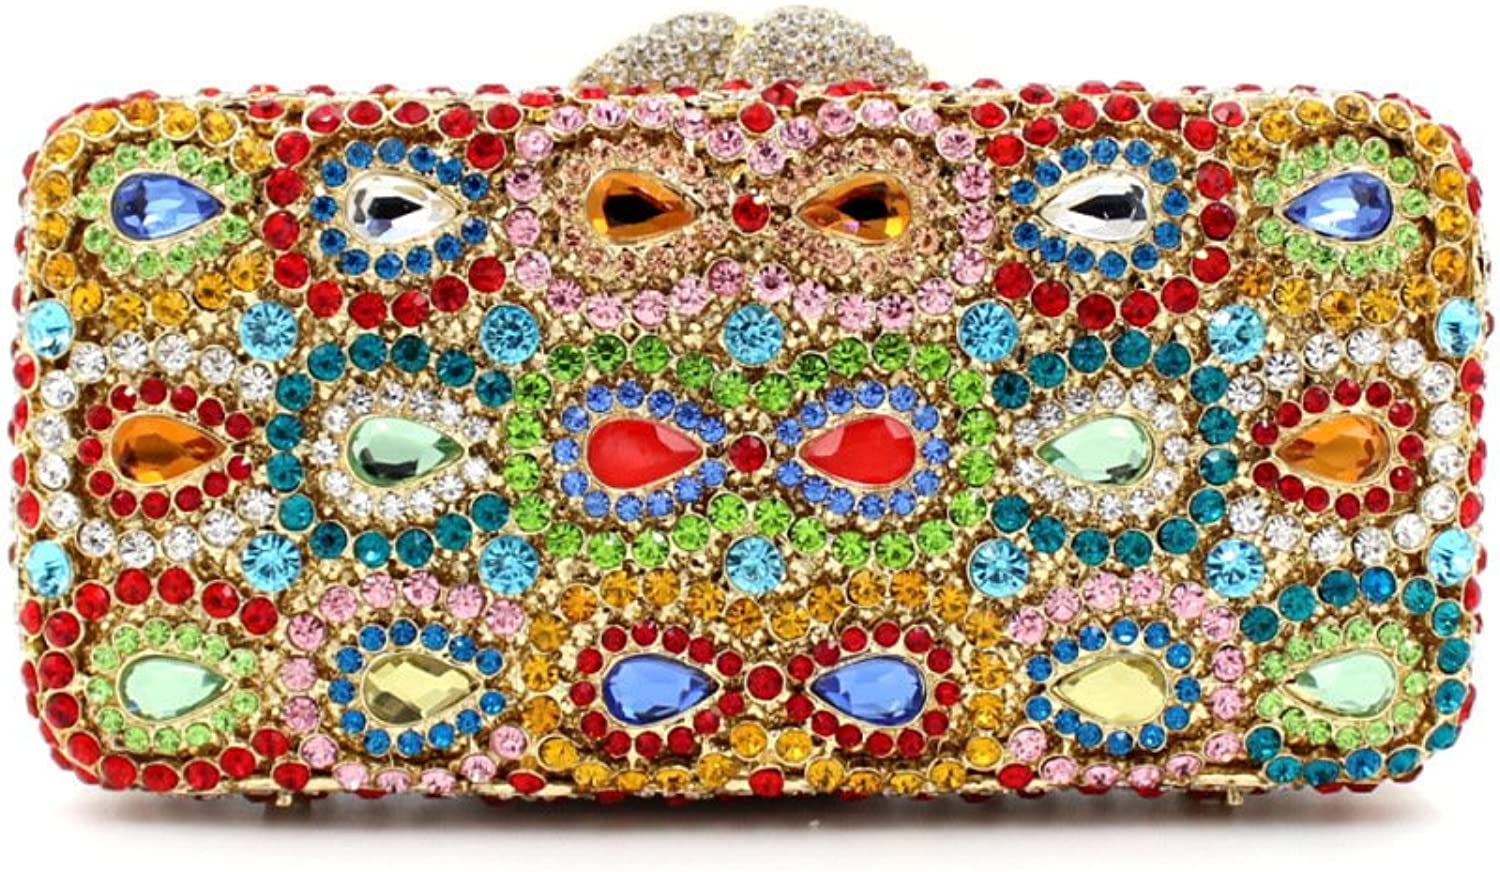 Mageleo Lady Evening Clutches Shoulder Water Droplets Bags Luxury Dinner Party colorful Shells Evening Embroidery Bag